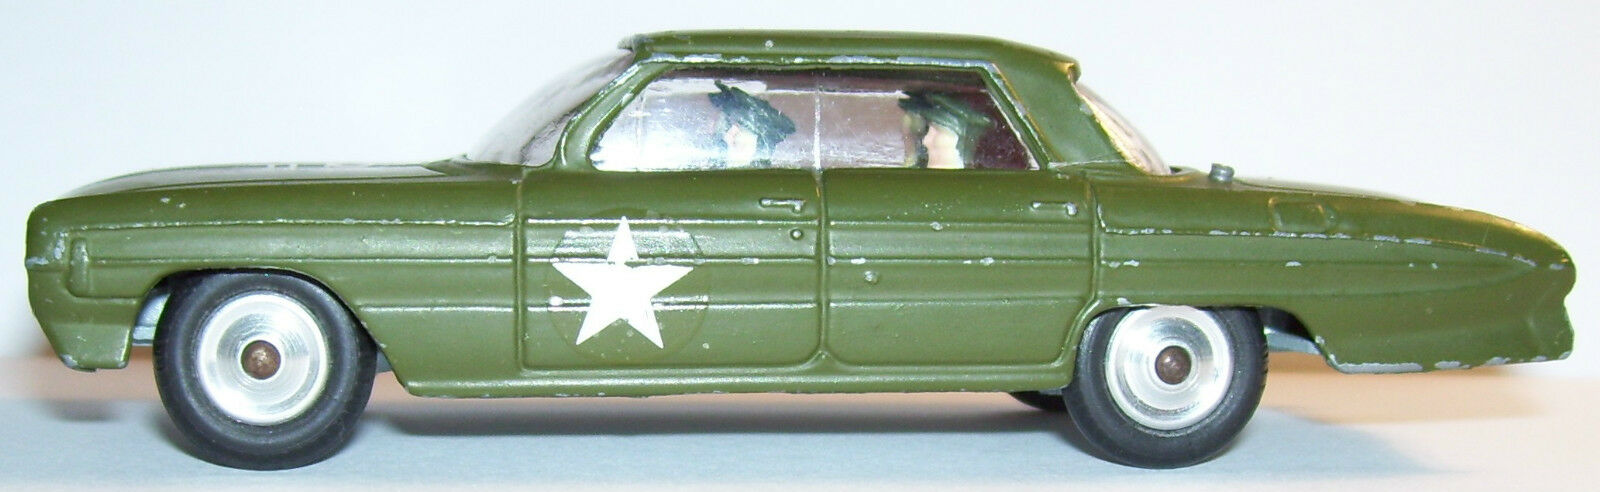 RARE MADE GREAT BRITAIN 1964 CORGI TOYS OLDSMOBILE SUPER 88 HQ STAFF CAR REF 358